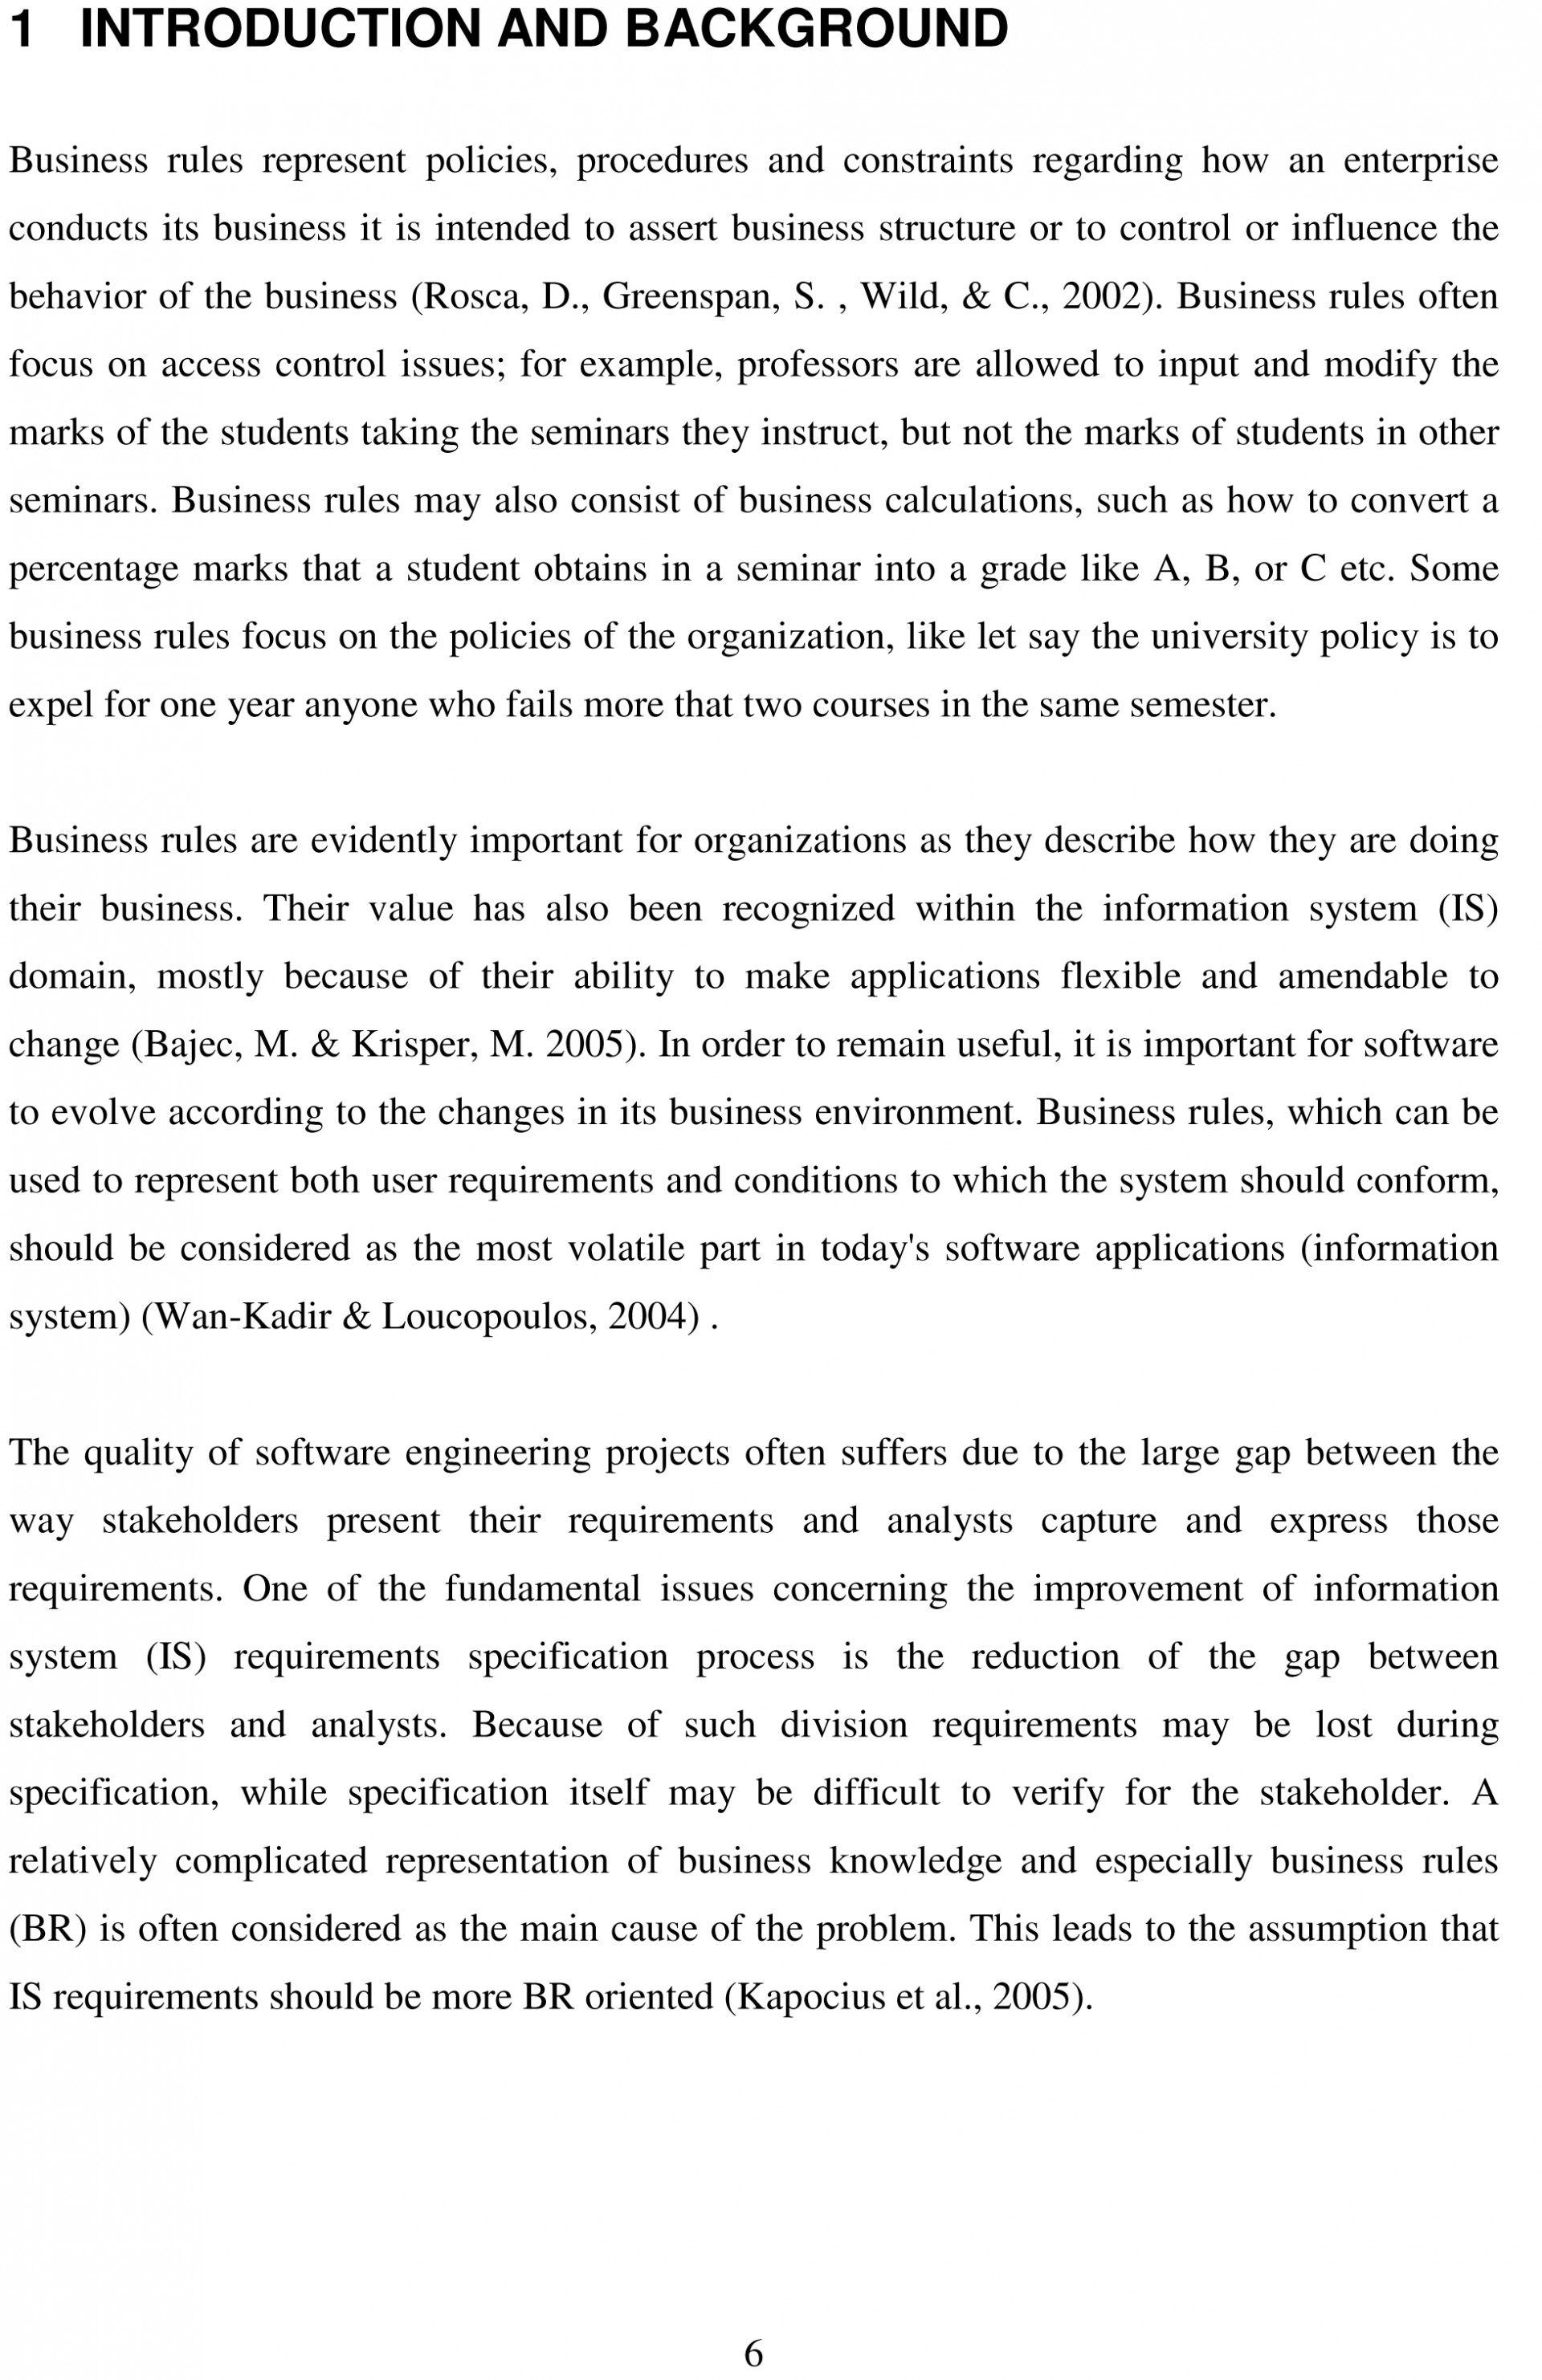 020 How To Write An Interview Essay Example Thesis Free Excellent Paper In Apa Format Introduction 1920